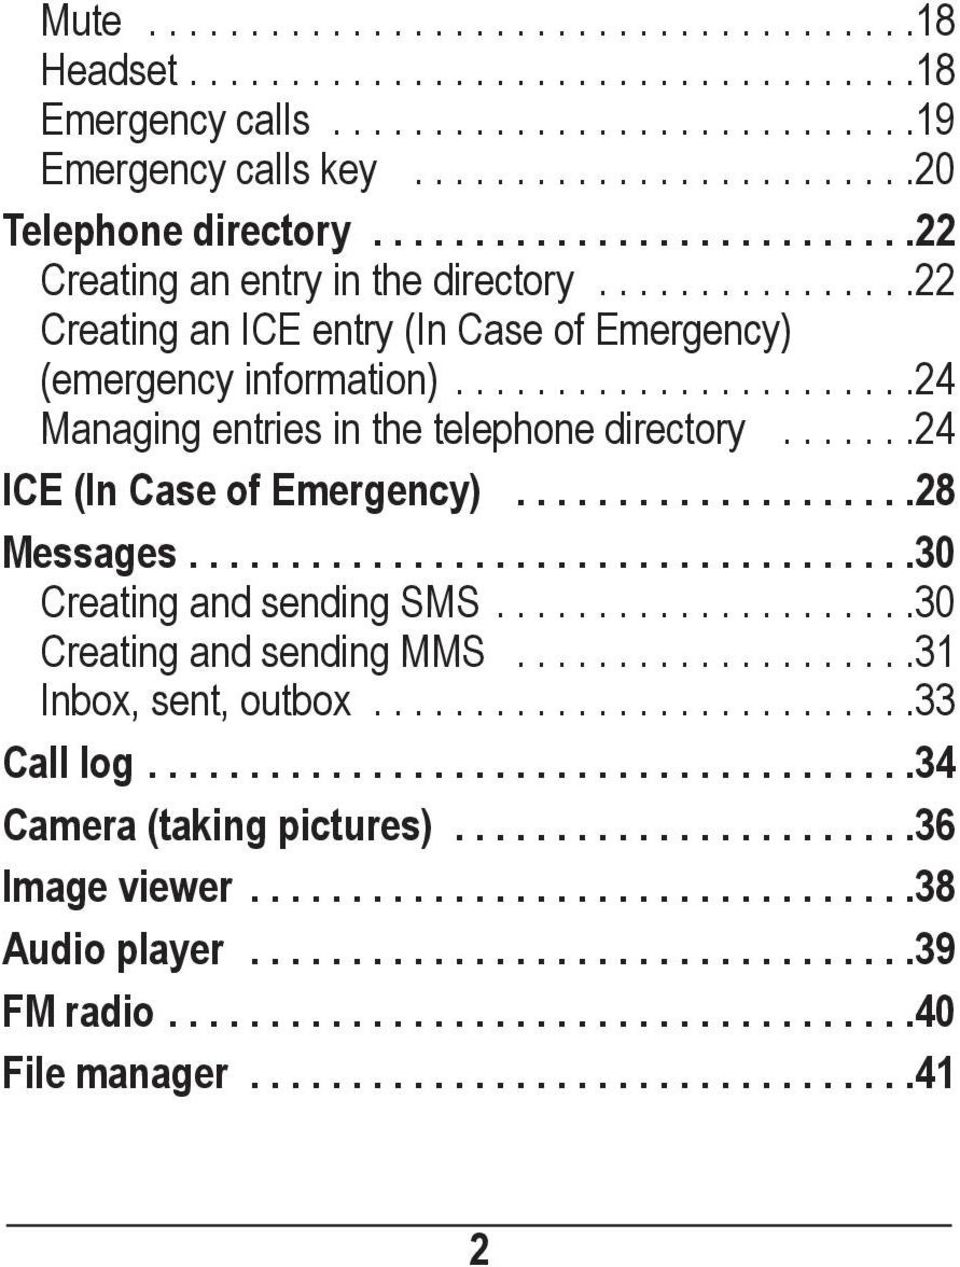 ......24 ICE (In Case of Emergency)....................28 Messages....................................30 Creating and sending SMS.....................30 Creating and sending MMS.